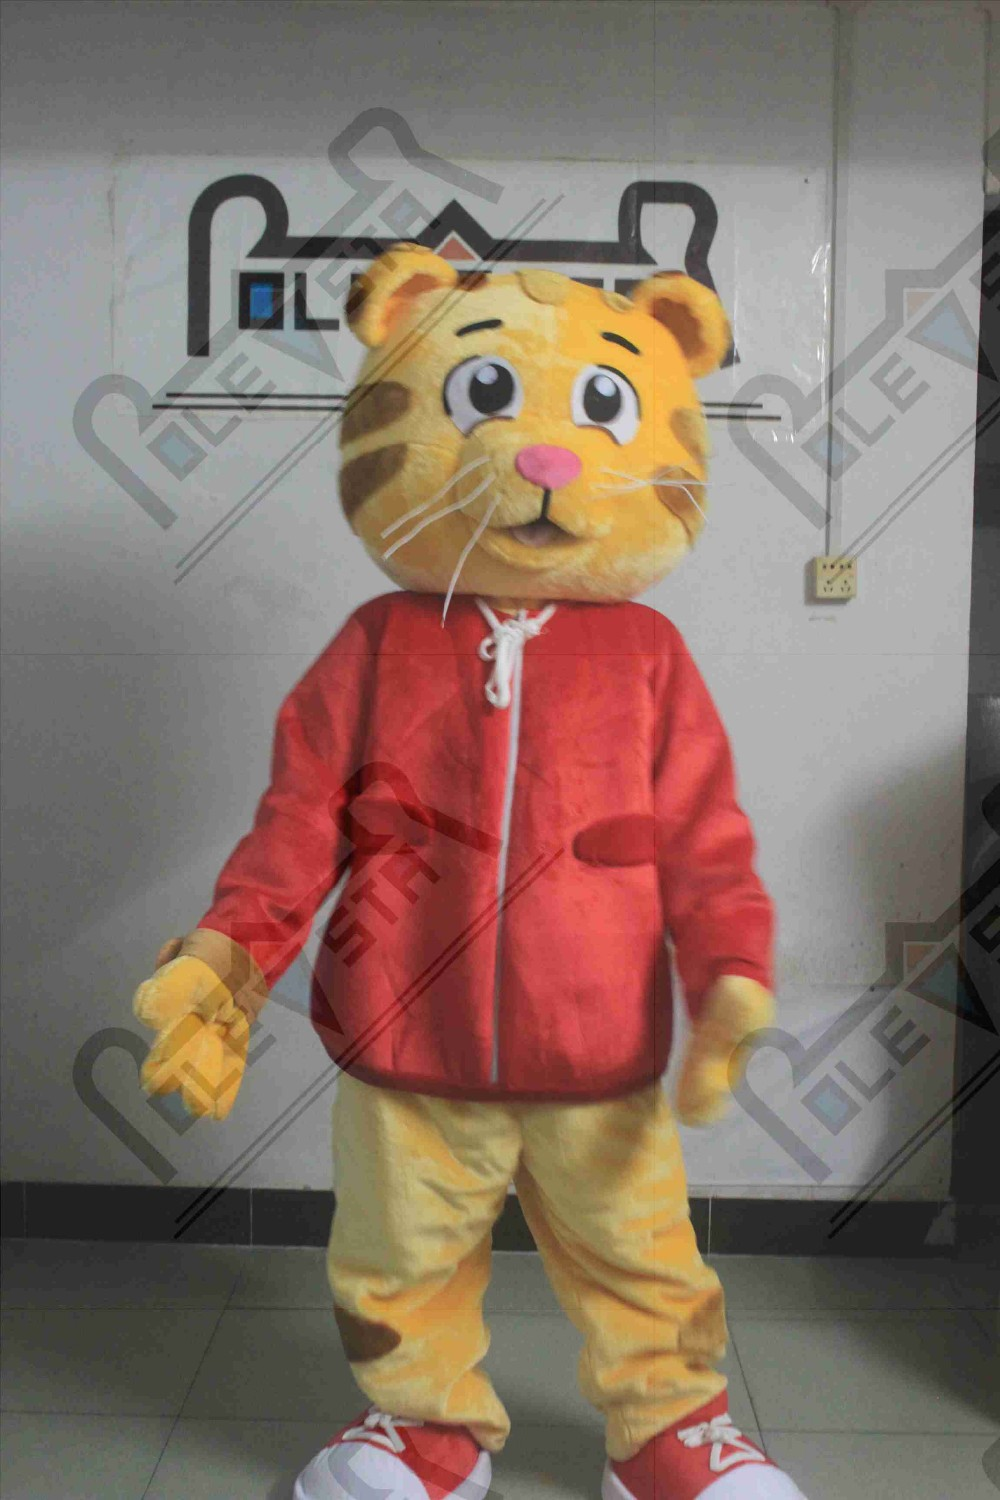 hot sale quality daniel tiger mascot costume red coat tiger costumes quality plush fur